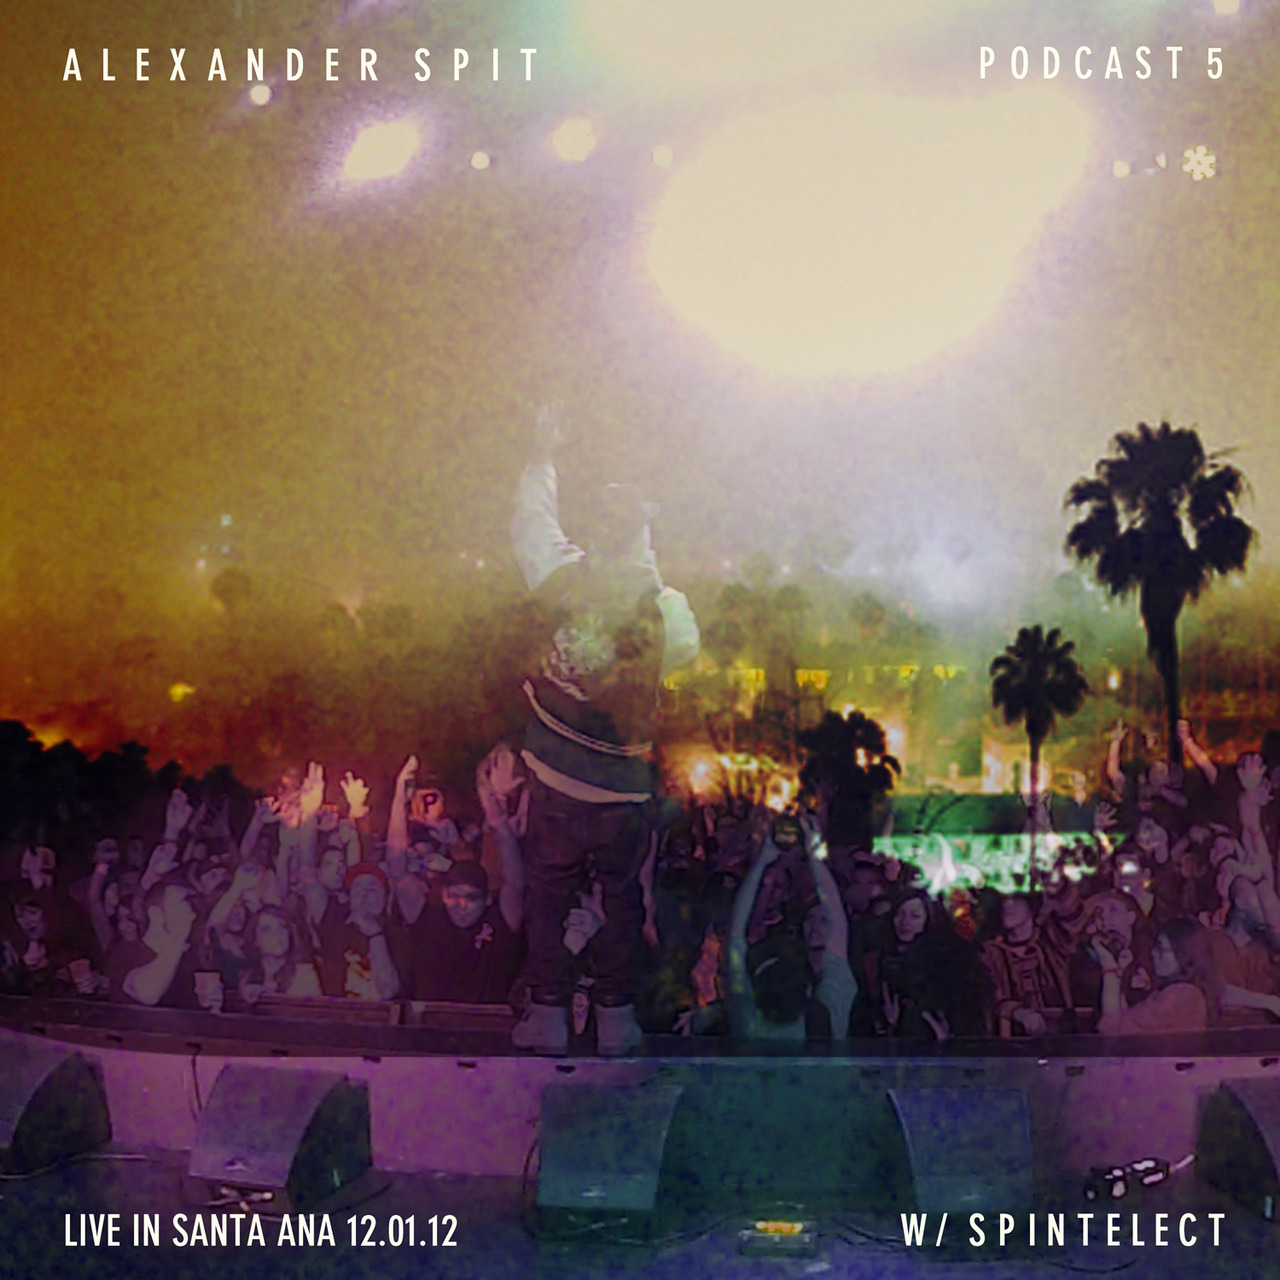 "ALEXANDER SPIT ""LIVE IN SANTA ANA 12.01.12"" W/ SPINTELECT PODCAST 5 CLICK ARTWORK TO SUBSCRIBE"